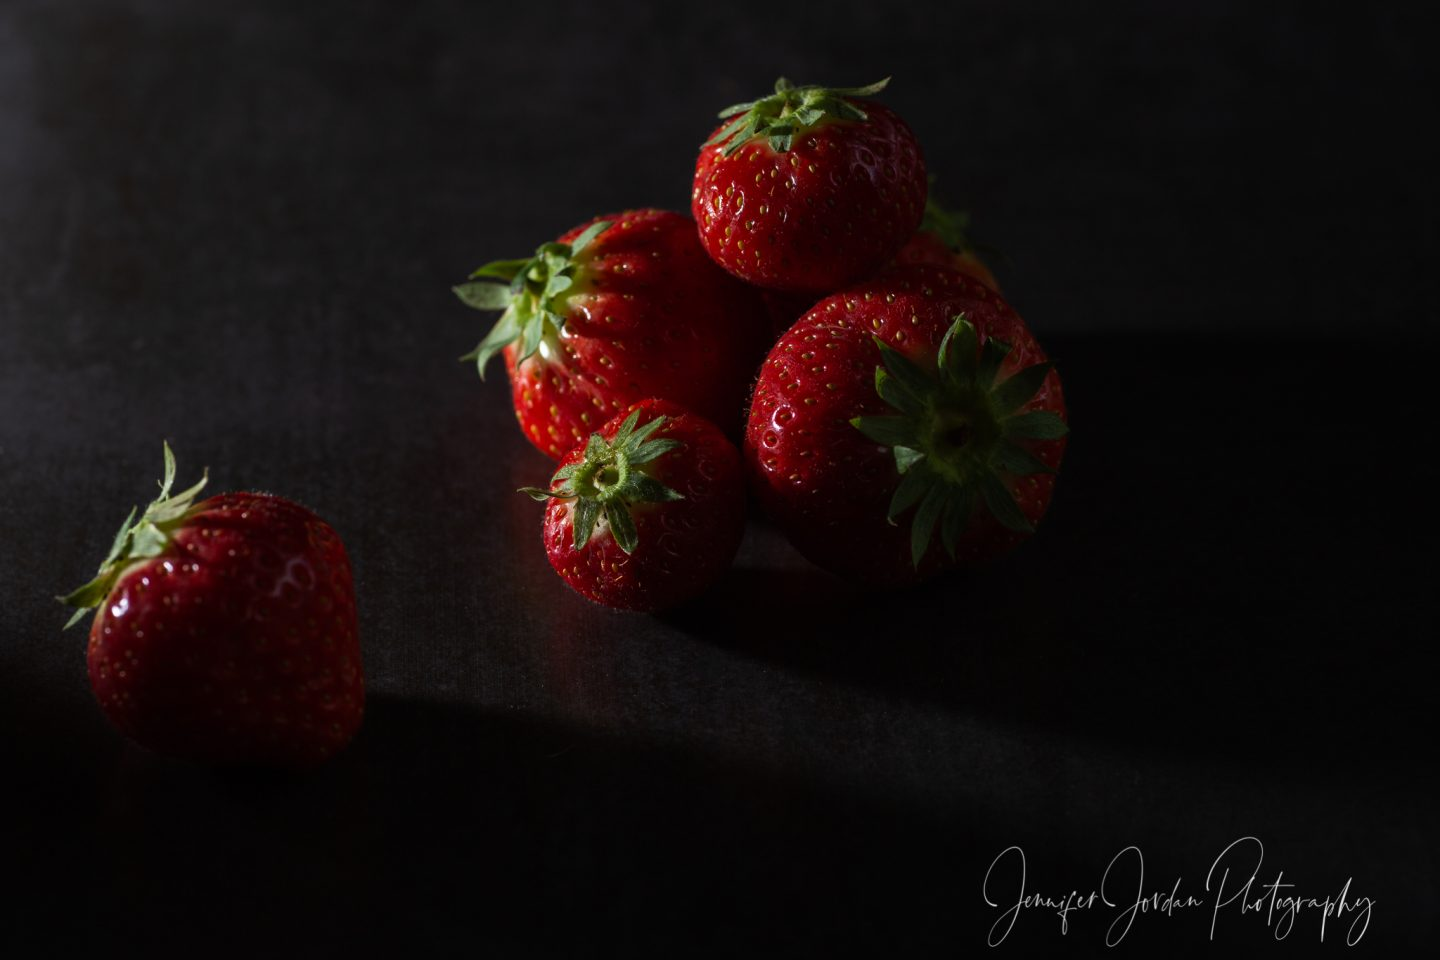 Strawberries low key lighting. Delicious food photography by Jennifer Jordan Photography Cornwall